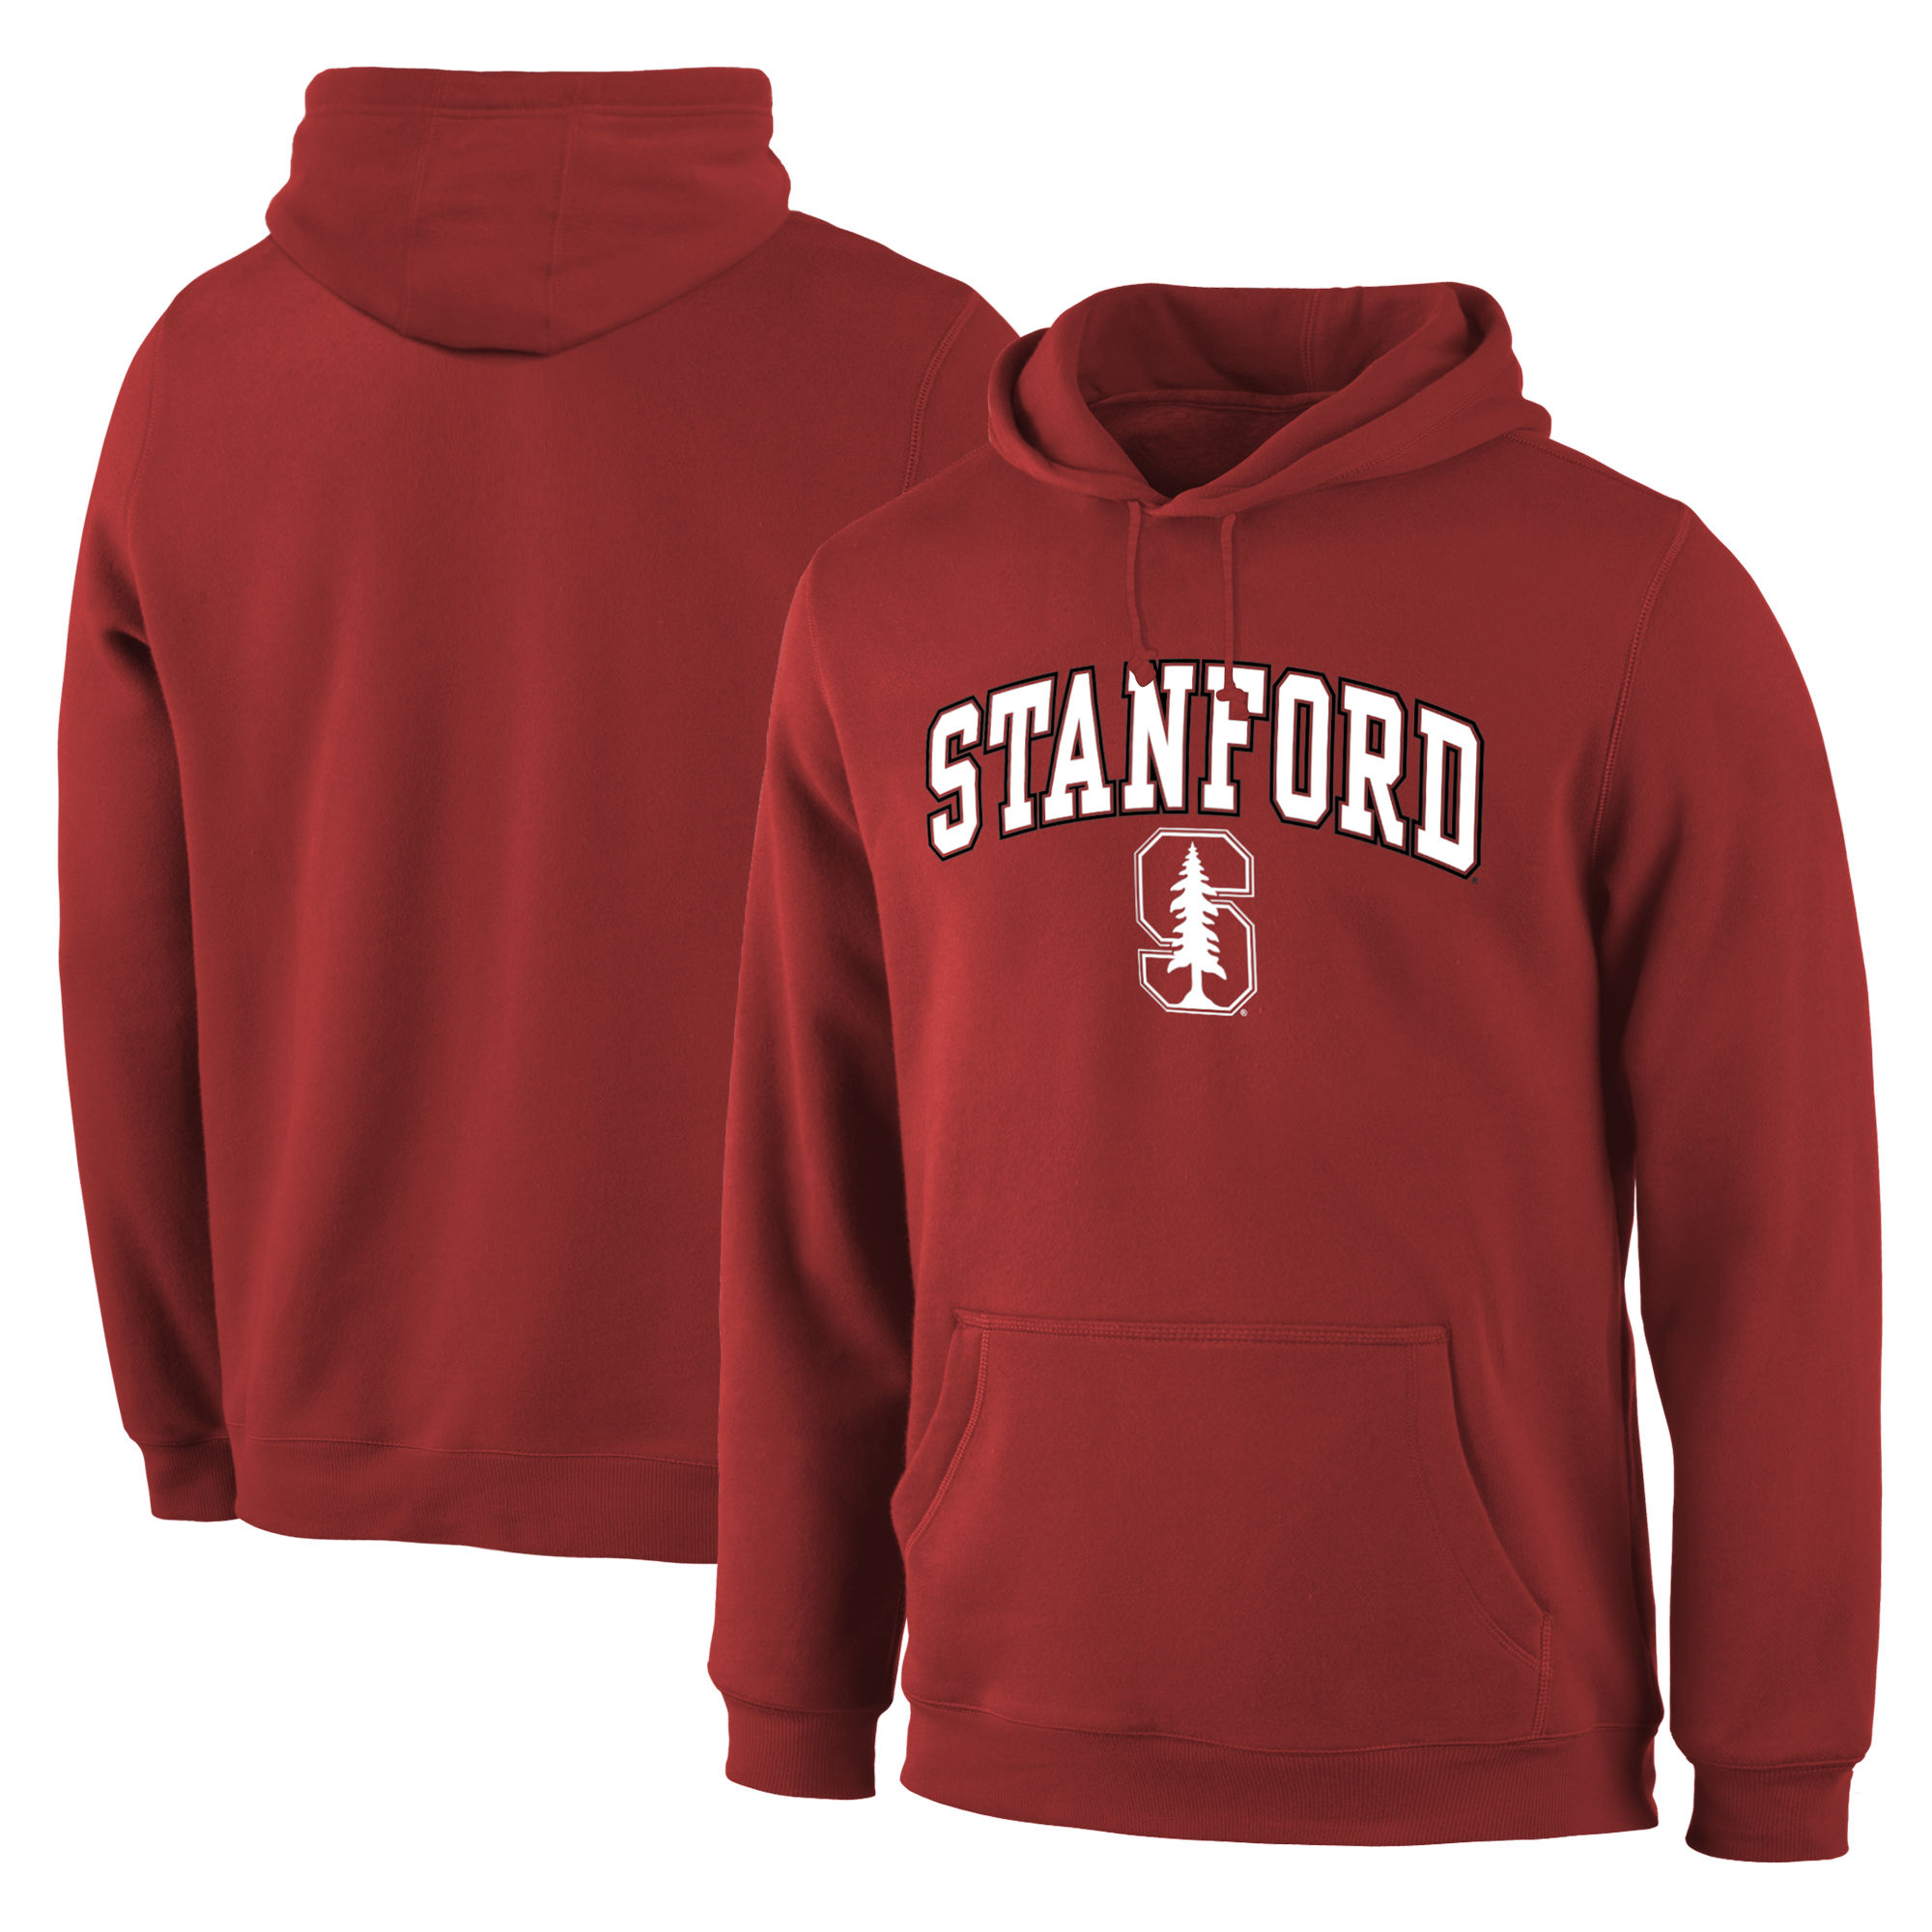 Stanford Cardinal Red Campus Pullover Hoodie